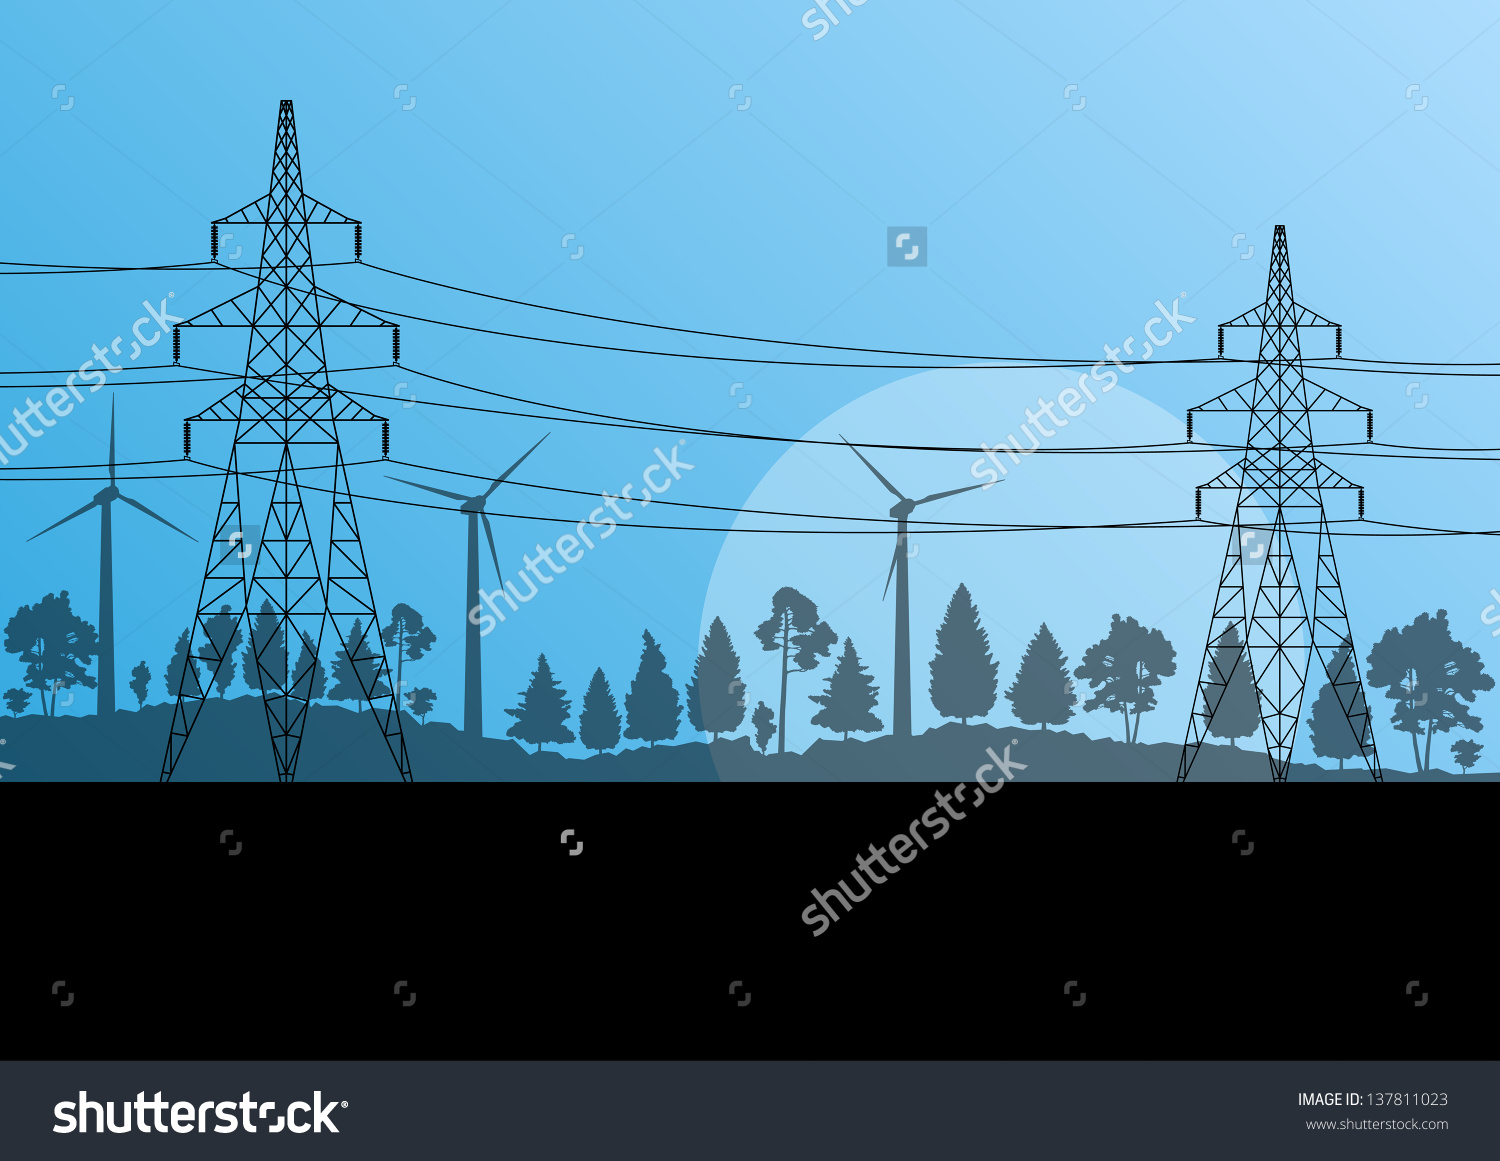 Power High Voltage Tower Vector Background Stock Vector 137811023.